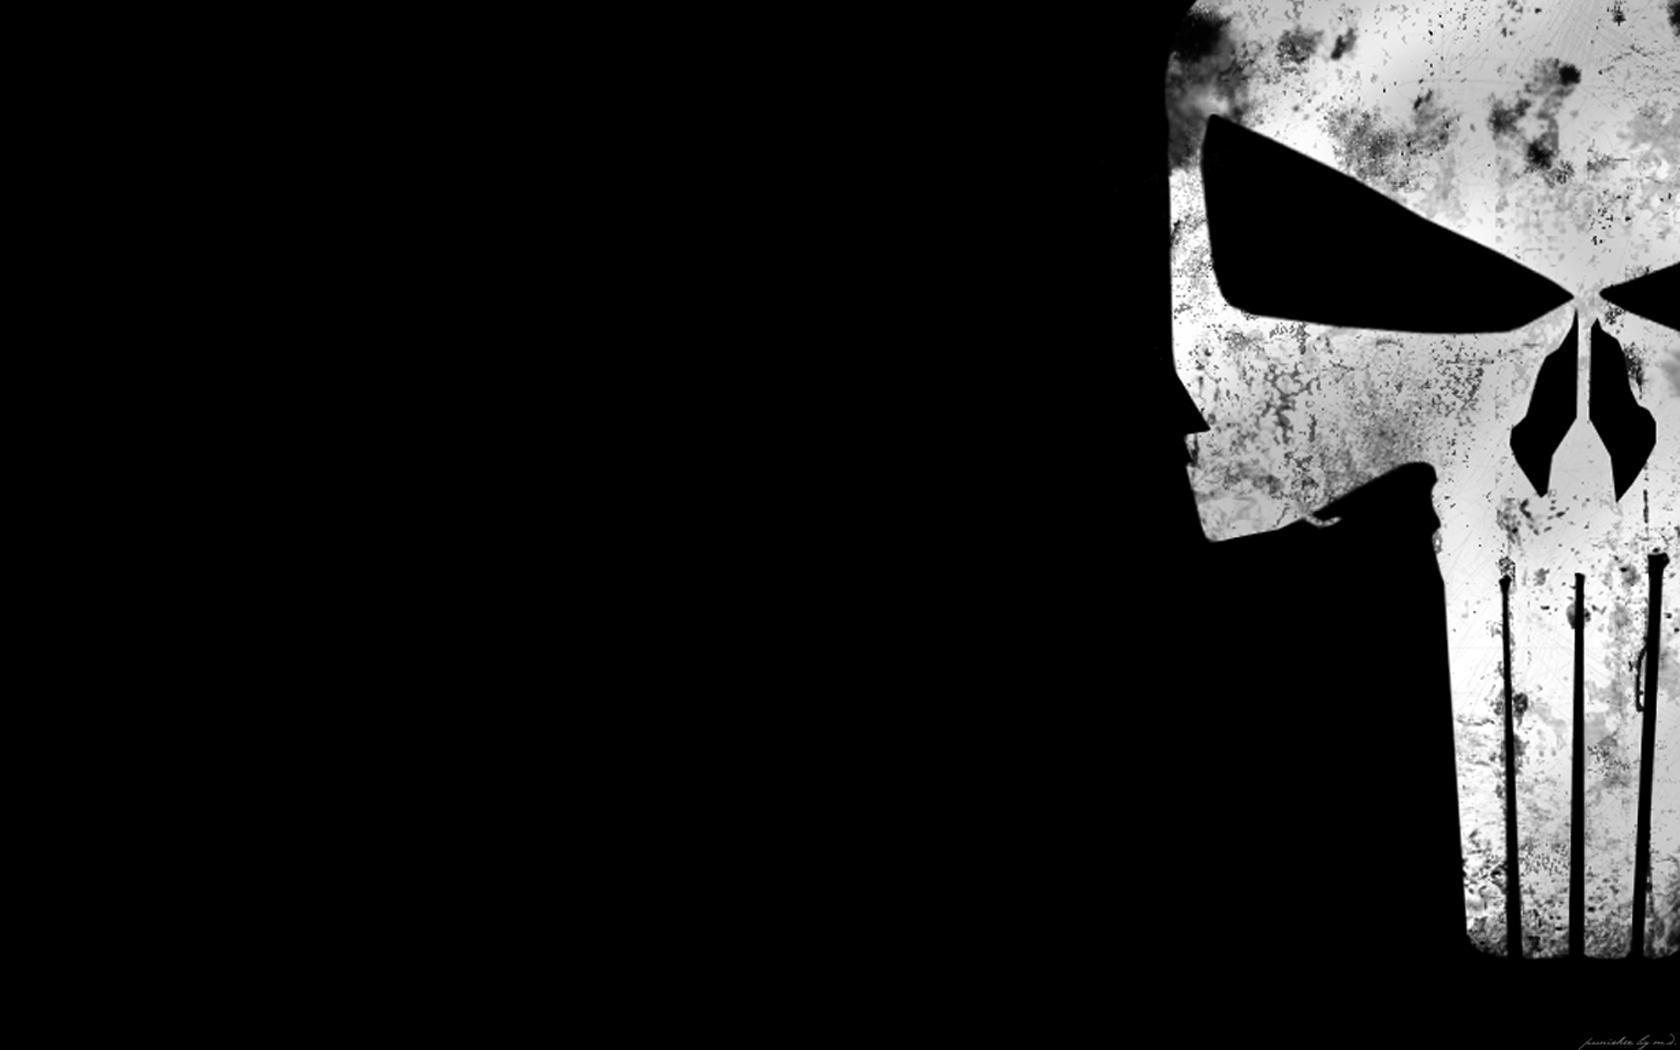 Cool Punisher Wallpapers Images amp Pictures   Becuo 1680x1050